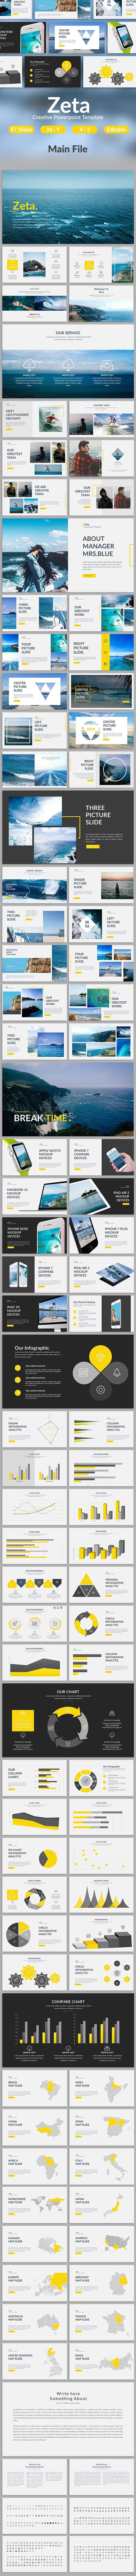 Zeta  Creative Powerpoint Template  #creative #keynote • Download ➝ https://graphicriver.net/item/zeta-creative-powerpoint-template/19450306?ref=pxcr